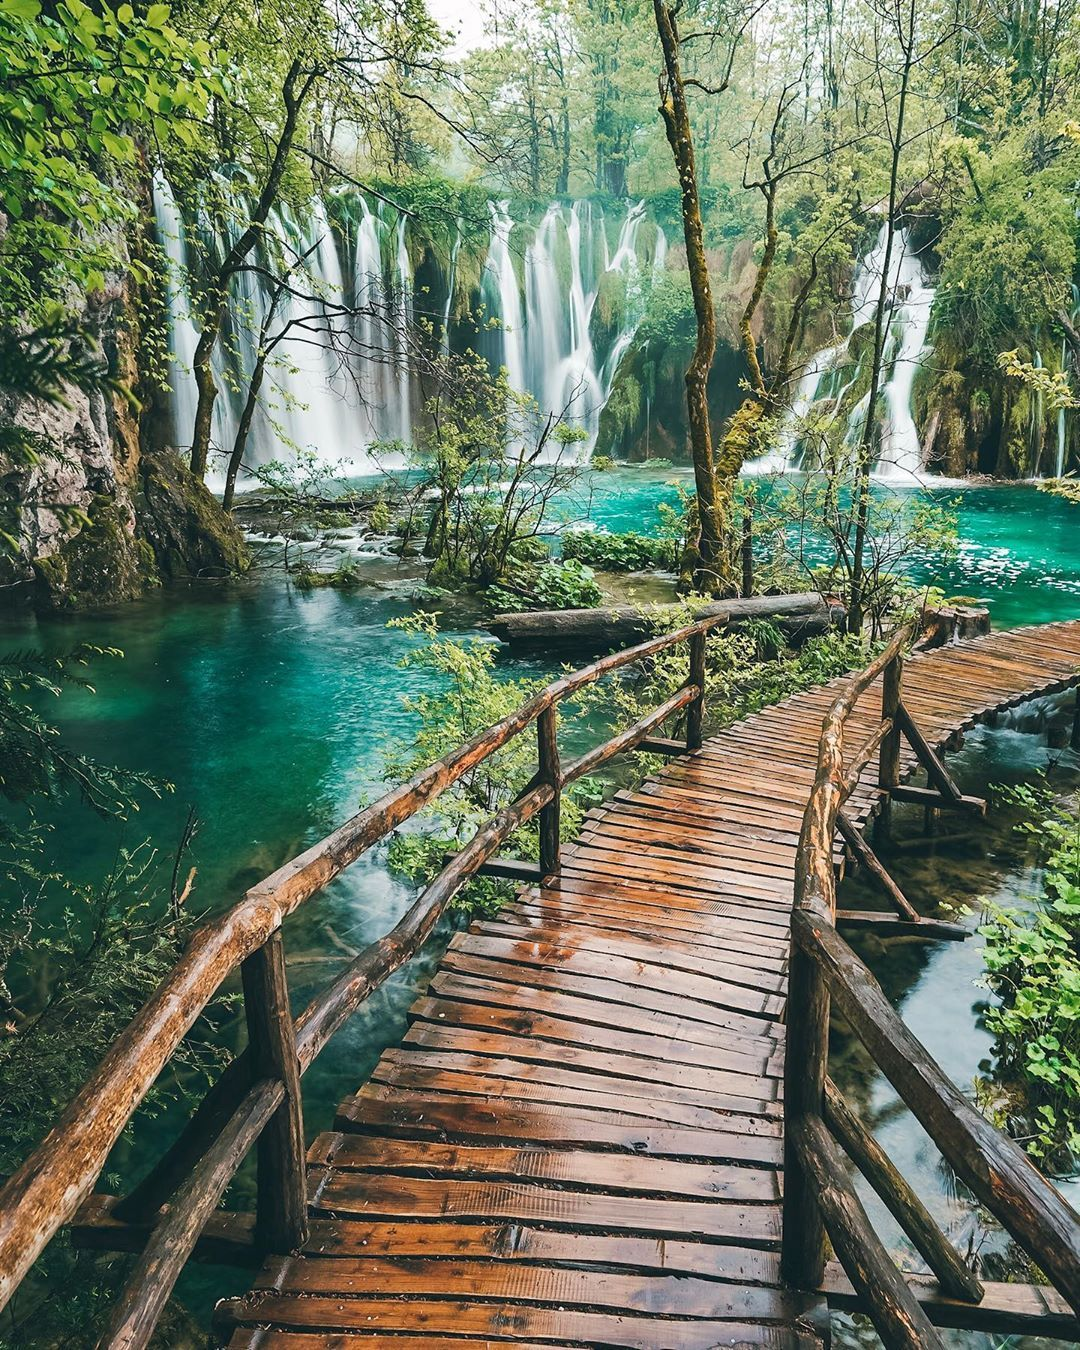 Plitvice Lakes Currently Visiting This Incredible National Park In Croatia The Weather Is Prett Plitvice Lakes Plitvice Lakes National Park Magical Places